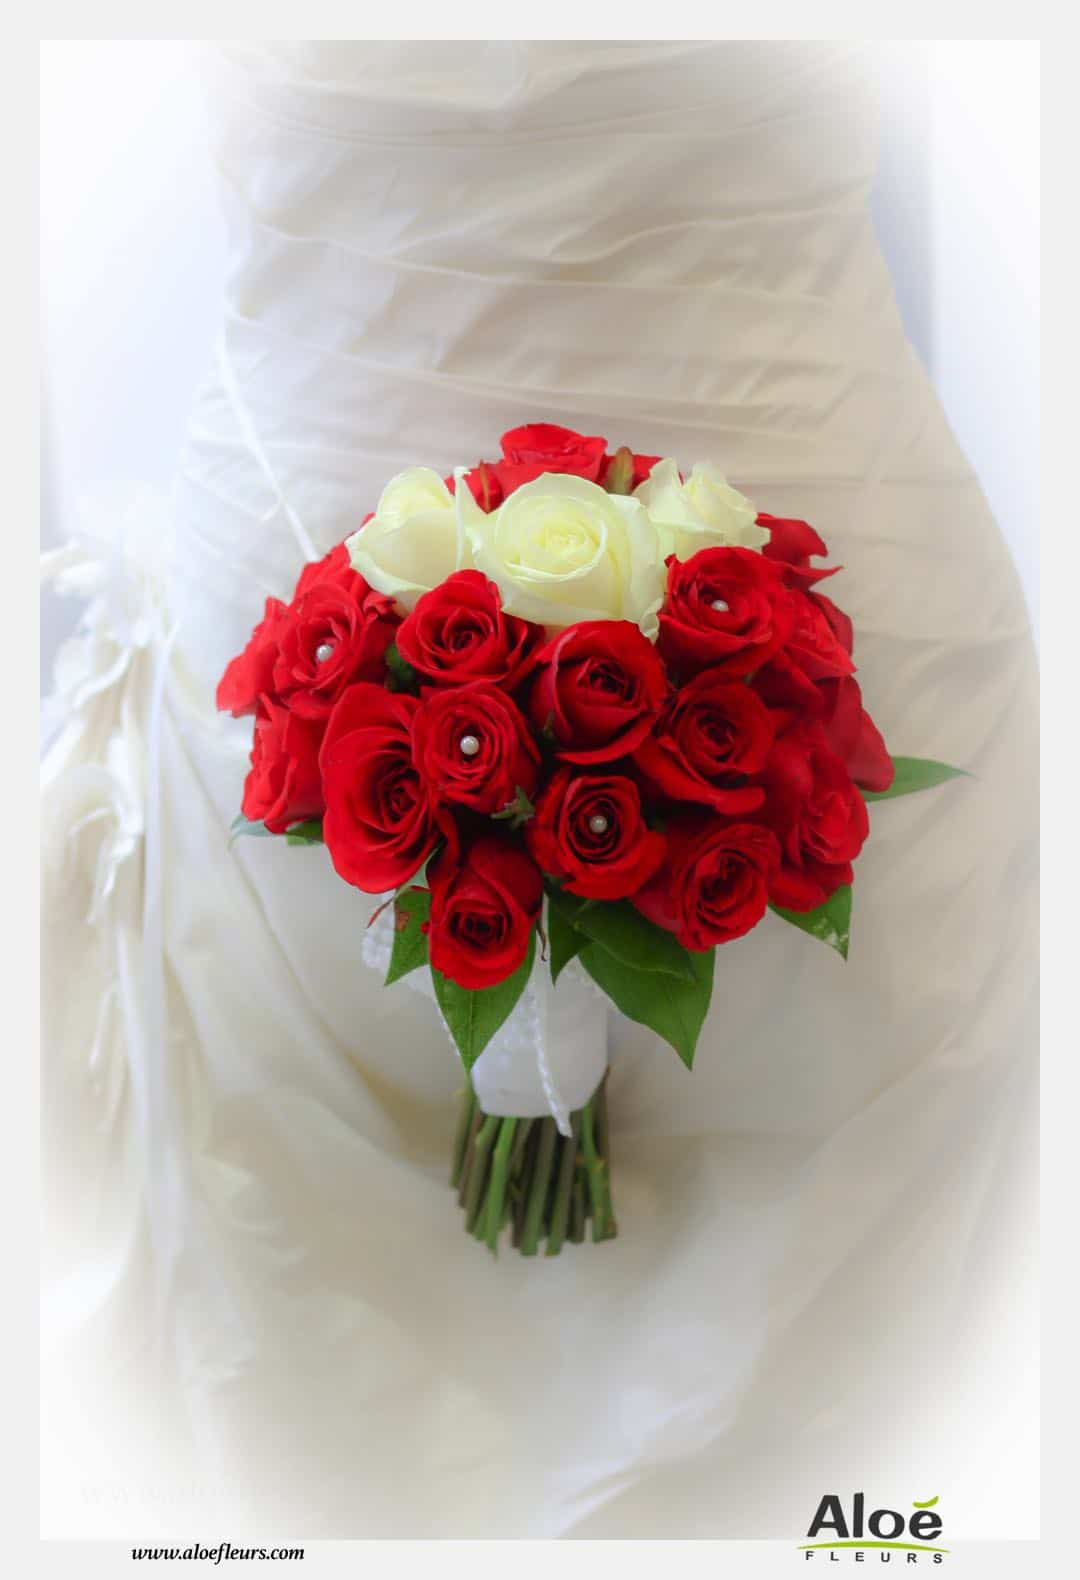 Mariage Tradition Rose Rouge  AloéFleurs    3018